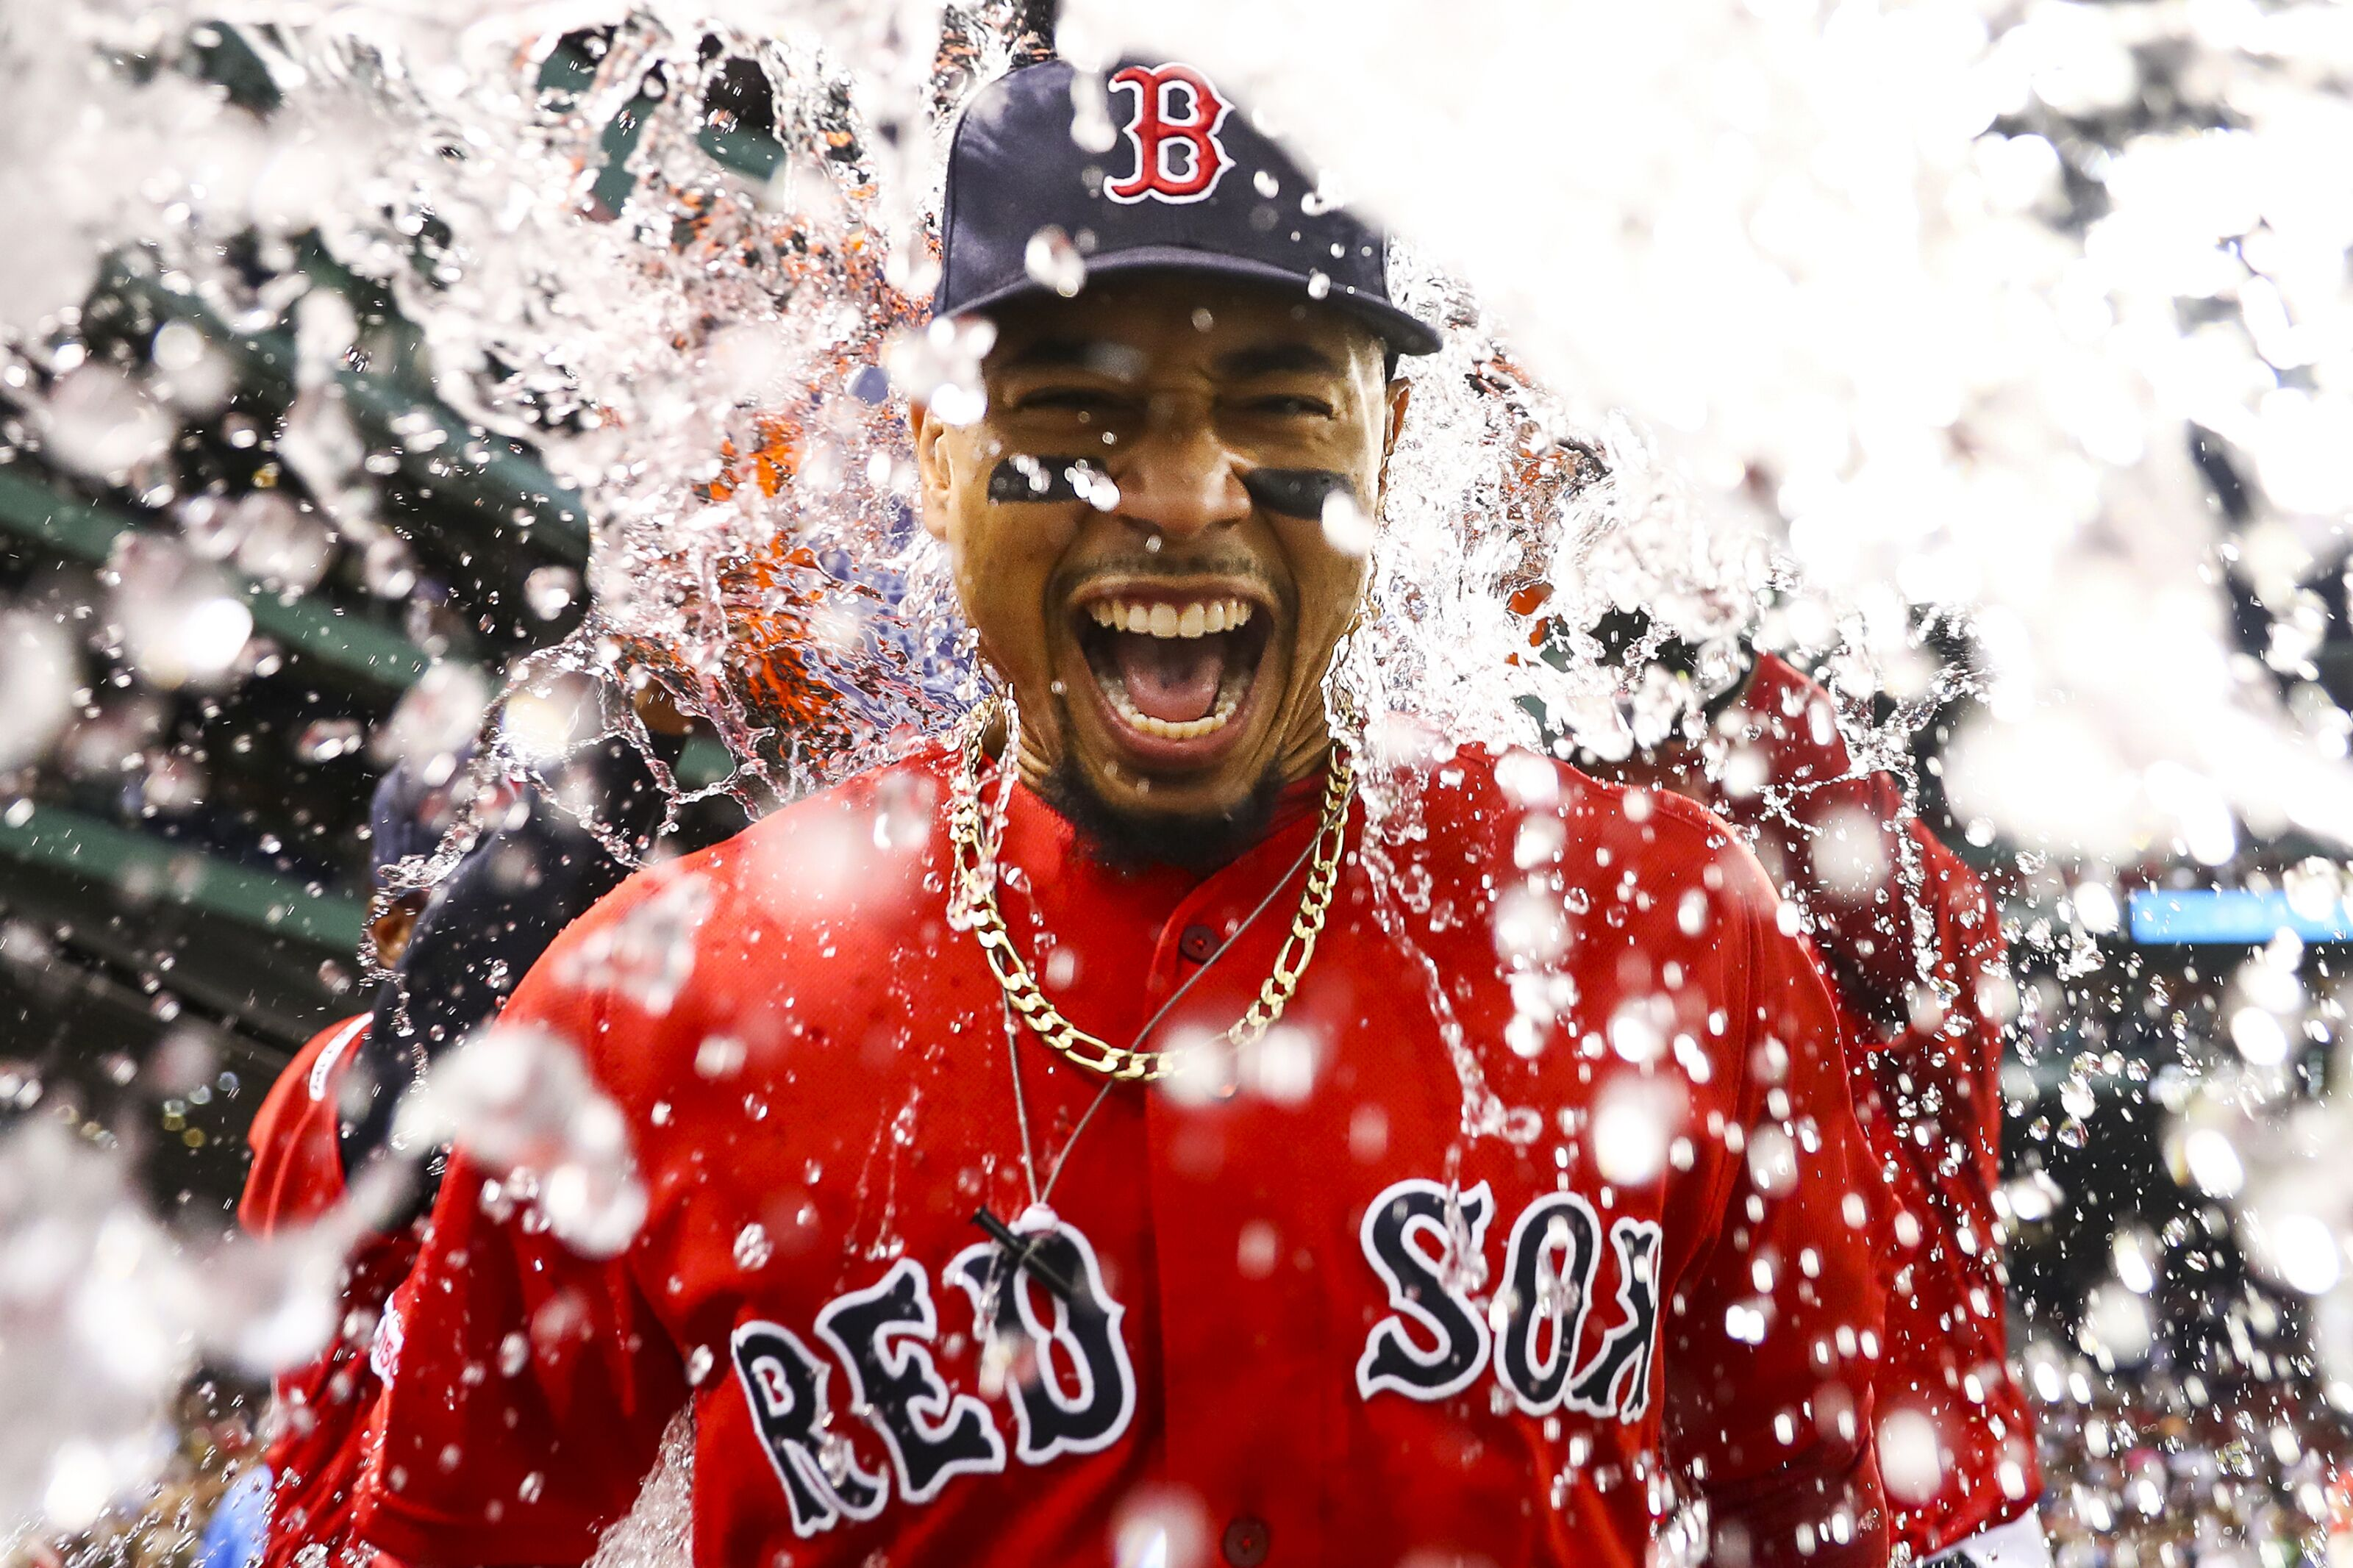 Chicago Cubs could go all-in with a Mookie Betts trade this offseason